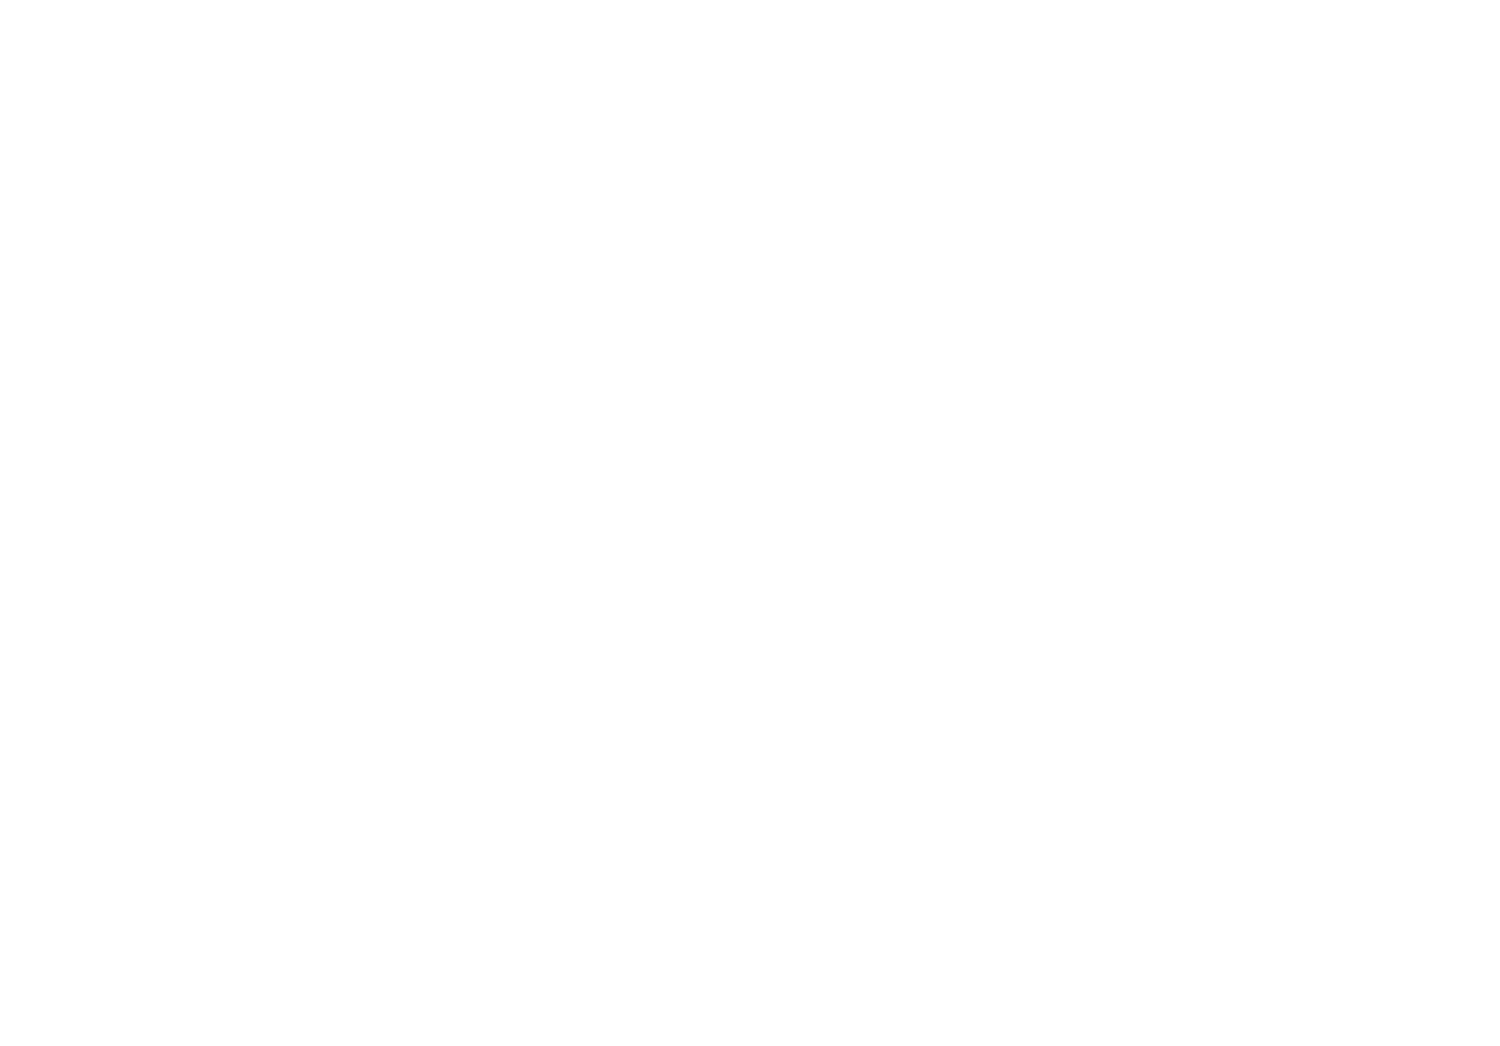 HONEY HOUNDS